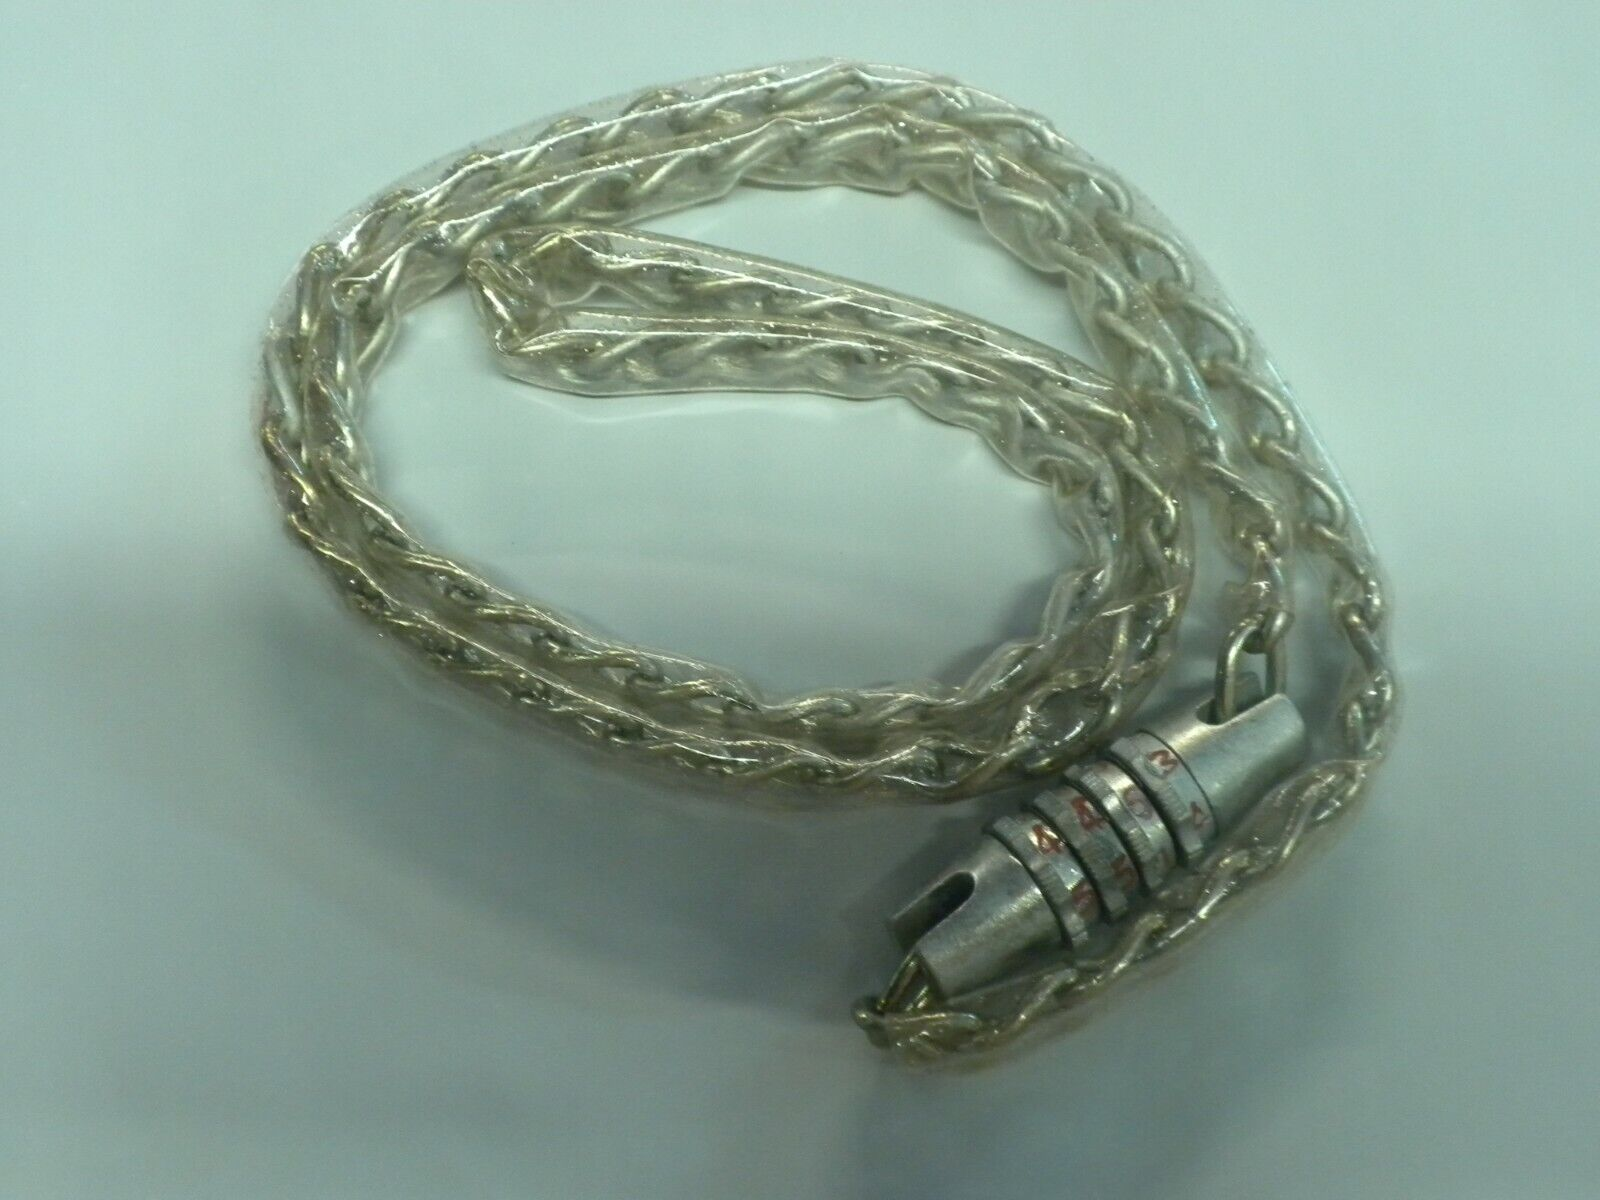 Vintage Vinyl Coated Chain with Combination Lock Silver 4 di